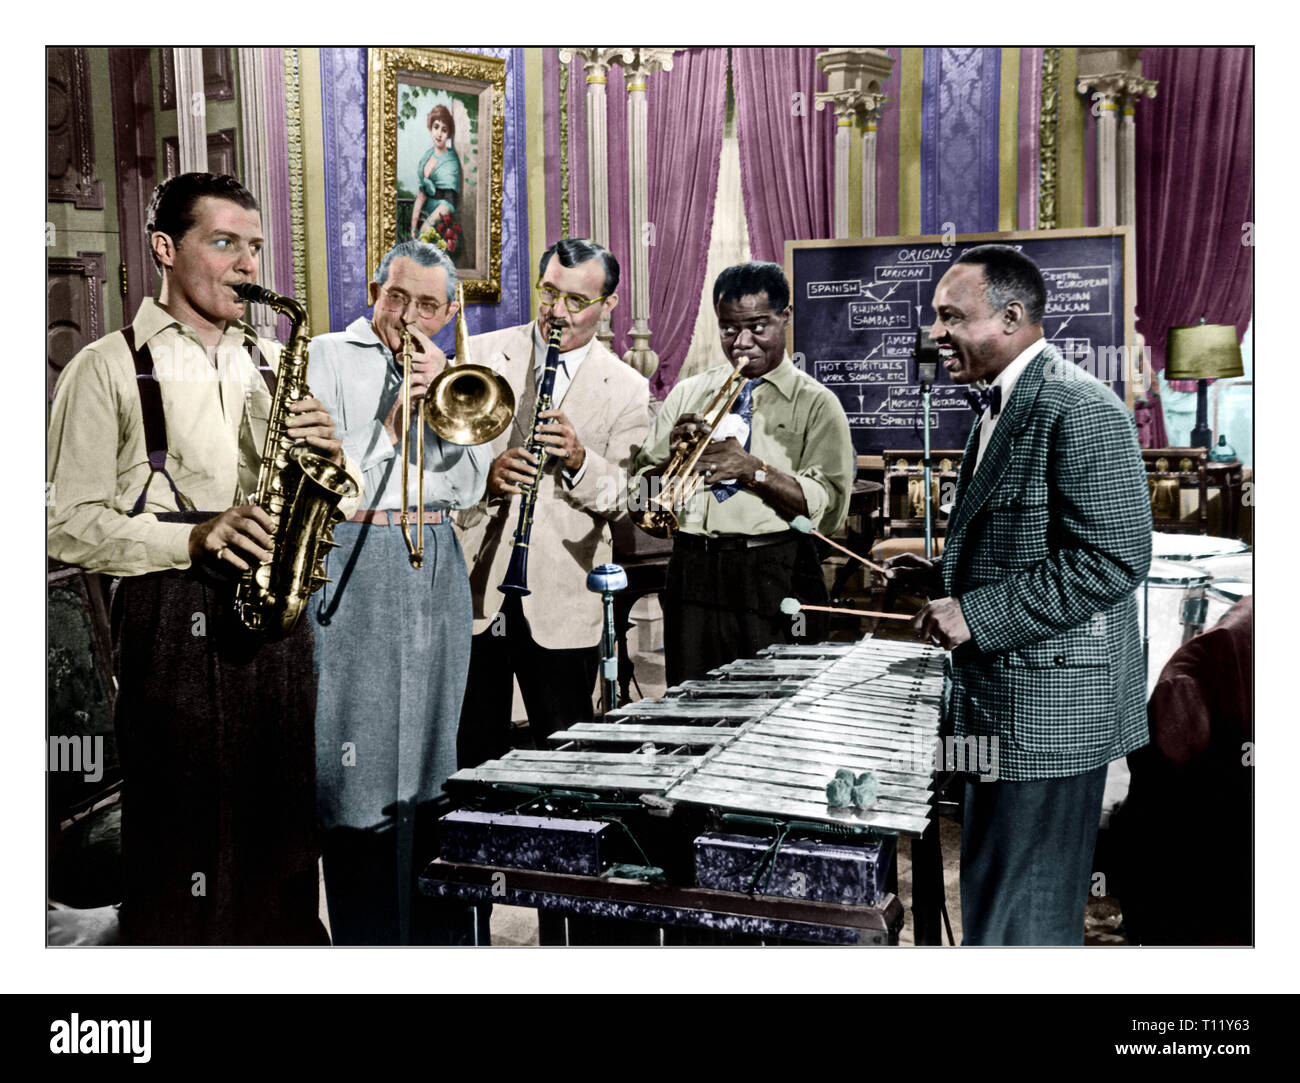 Armstrong was born and raised in New Orleans. Coming to prominence in the 1920s as an 'inventive' trumpet and cornet player, Armstrong was a foundational influence in jazz, shifting the focus of the music from collective improvisation to solo performance.[5] Around 1922, he followed his mentor, Joe 'King' Oliver, to Chicago to play in the Creole Jazz Band. In the Windy City, he networked with other popular jazz musicians, reconnecting with his friend, Bix Beiderbecke, and made new contacts, which included Hoagy Carmichael and Lil Hardin. He earned a reputation at 'cutting contests', and reloca - Stock Image